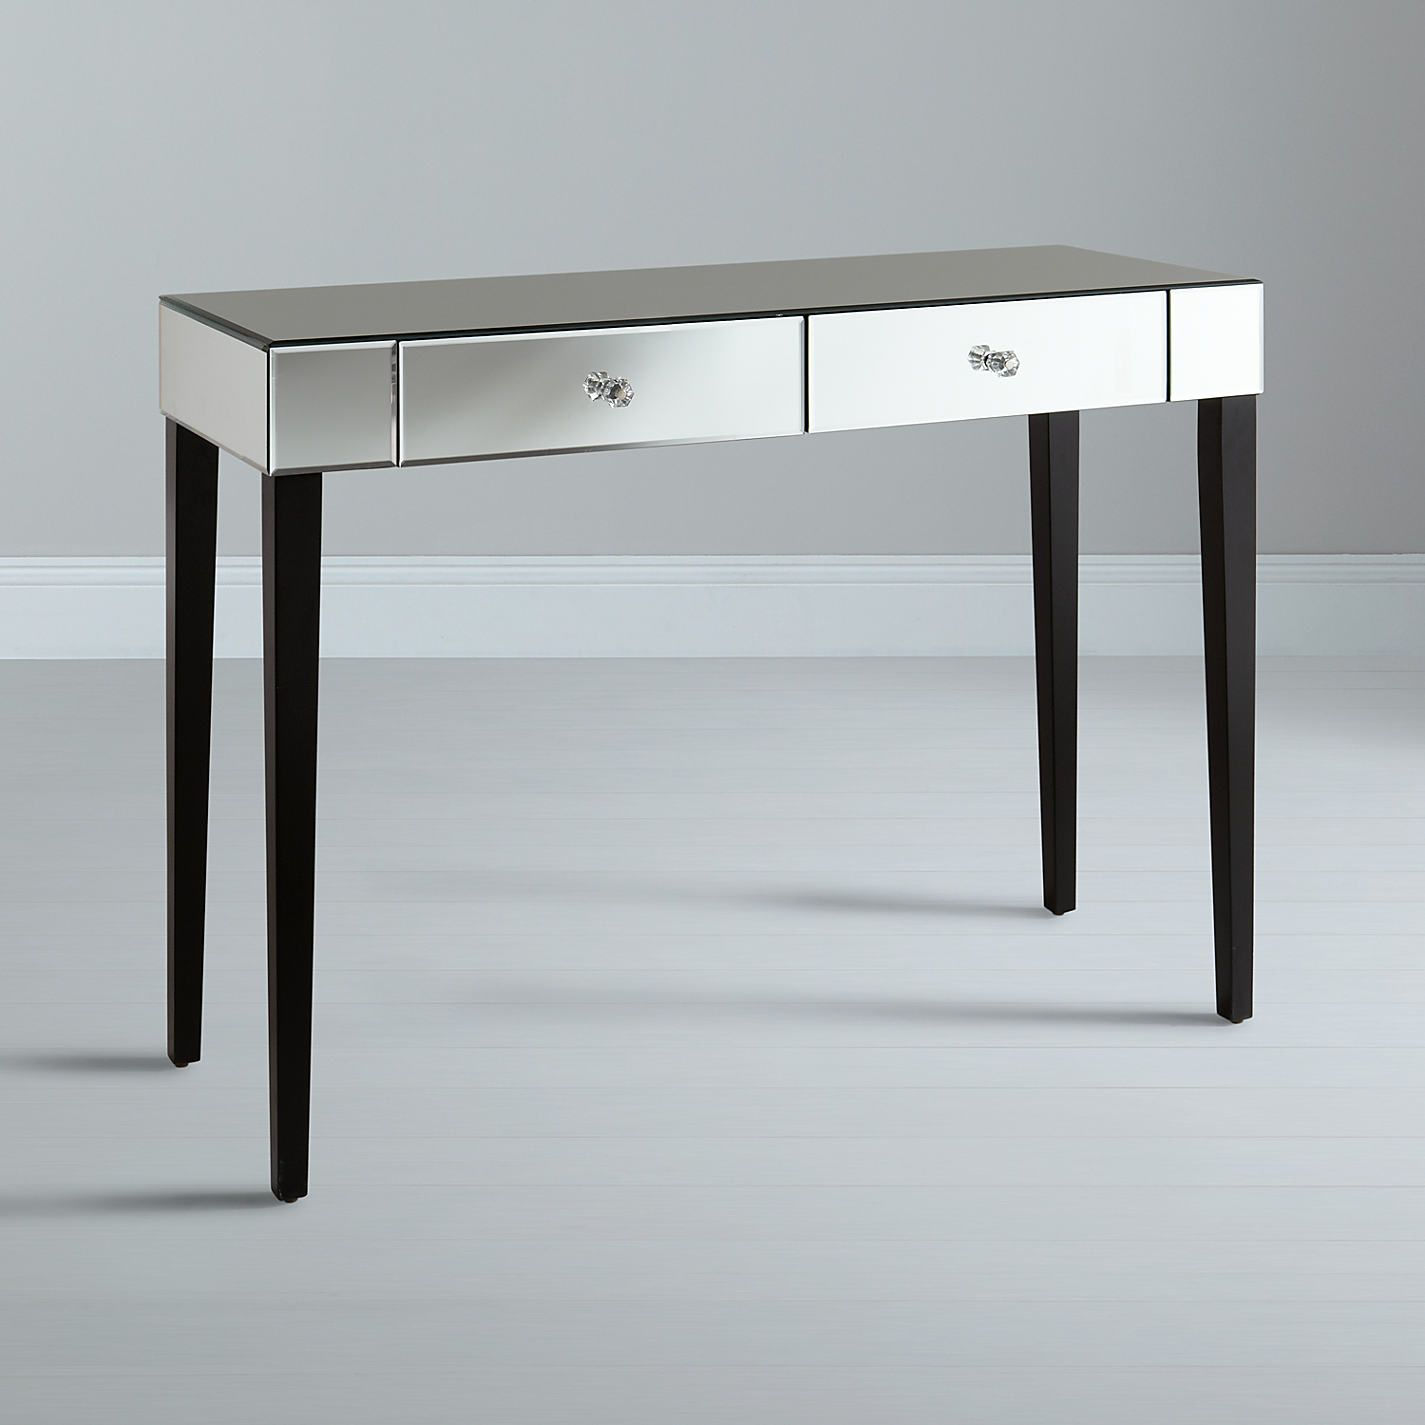 Buy john lewis astoria mirrored console table john lewis buy john lewis astoria mirrored console table john lewis geotapseo Gallery